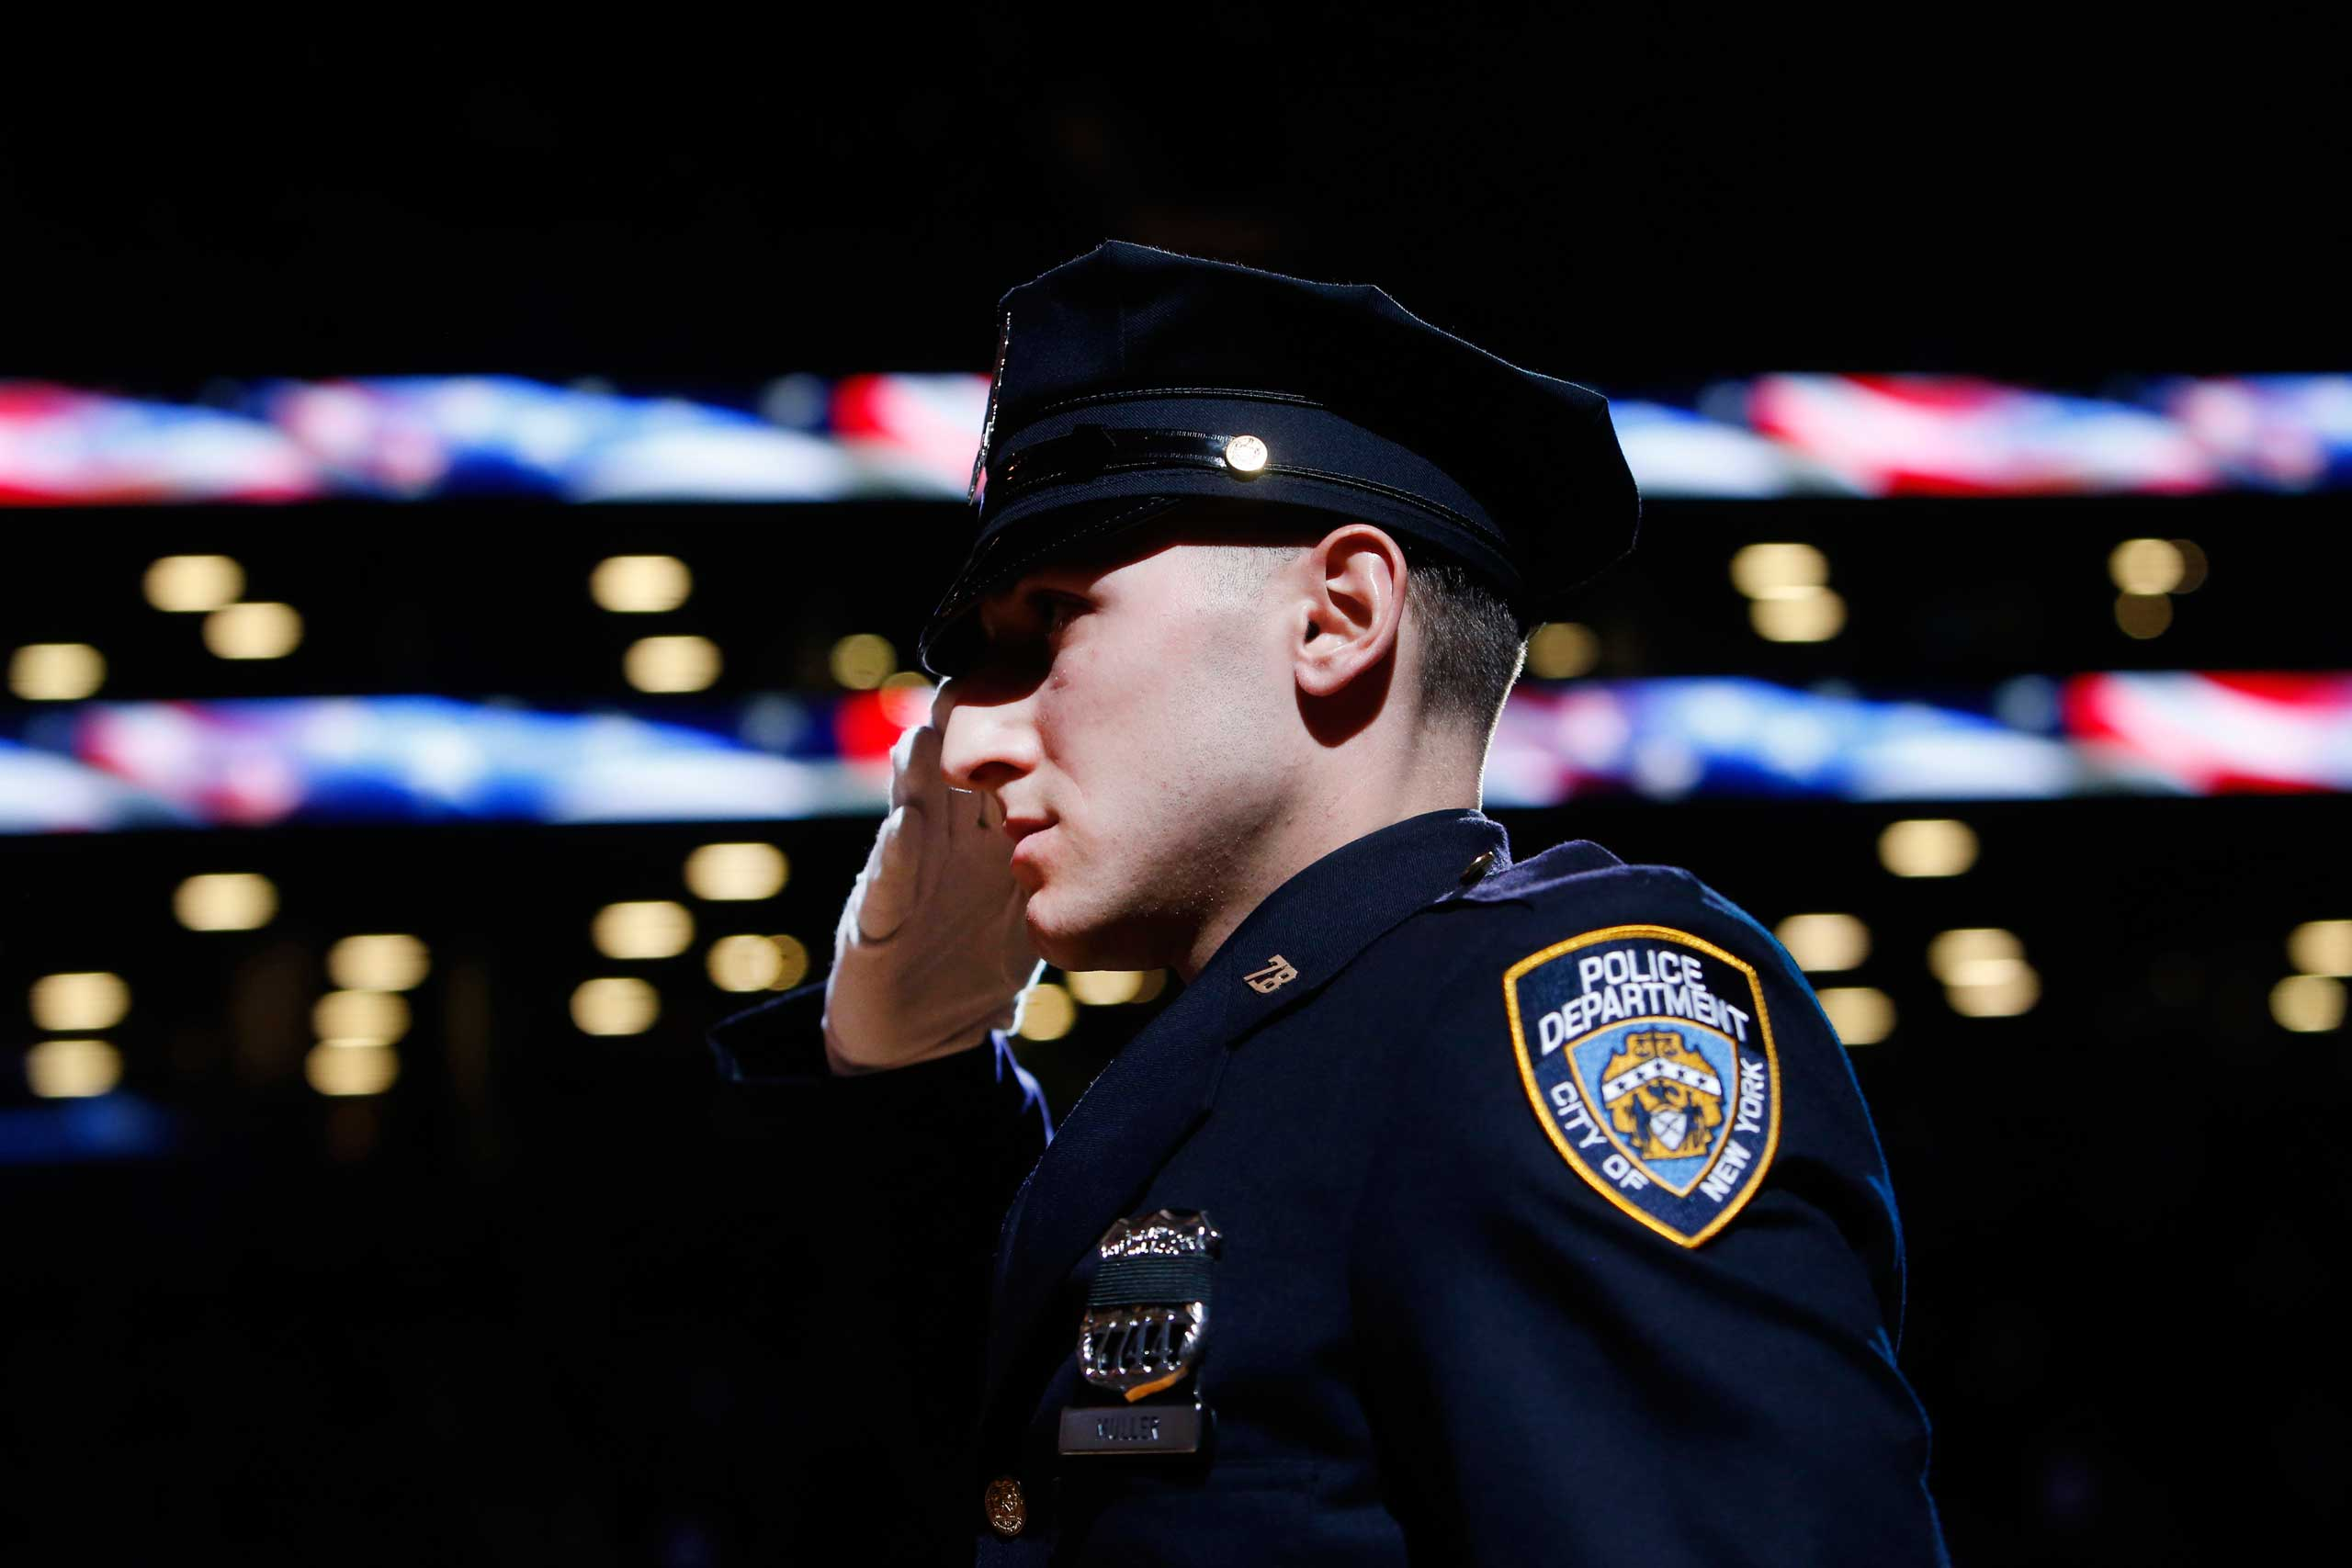 New York Police Department officer Jason Muller salutes during the national anthem after participating in a moment of silence for two slain NYPD officers before an NBA basketball game between the Brooklyn Nets and the Detroit Pistons in New York City on Dec. 21, 2014.